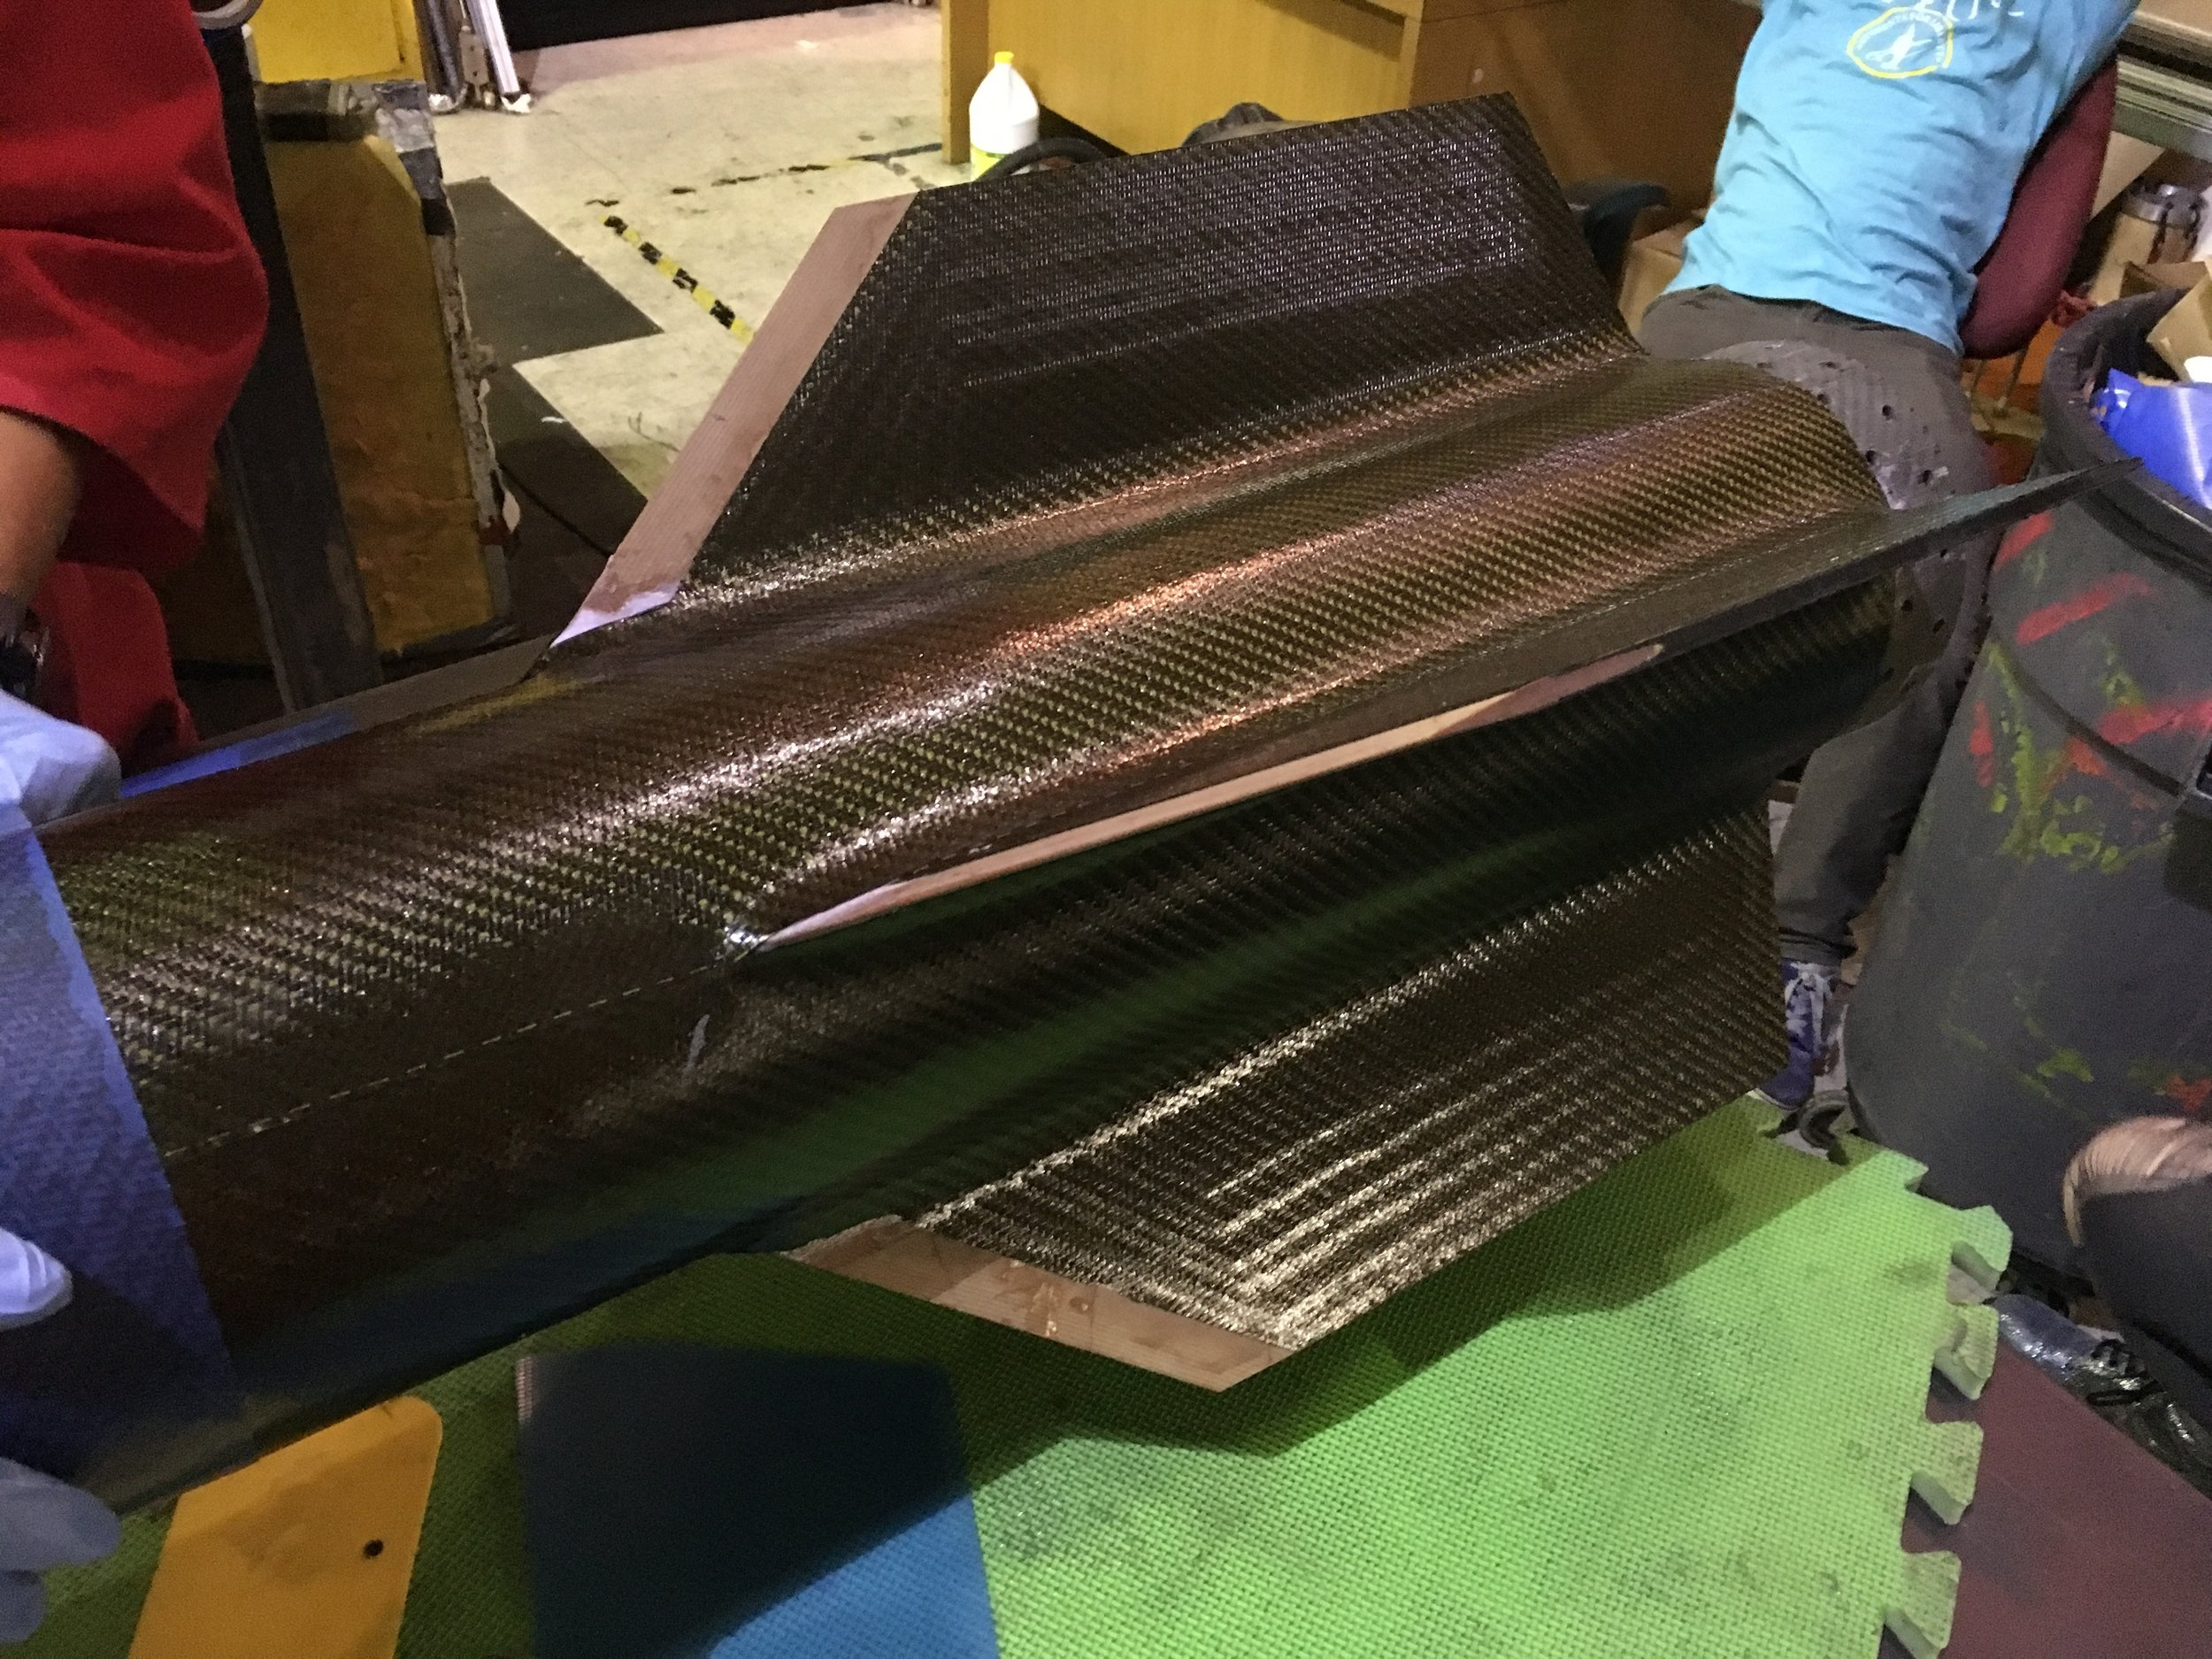 Part way through the tip-to-tip carbon fiber layup to secure the fins to the vehicle. This layup always takes longer than we expect, and Fathom II was no exception: this photo was taken at 1 AM, when we were about 10% of the way done.